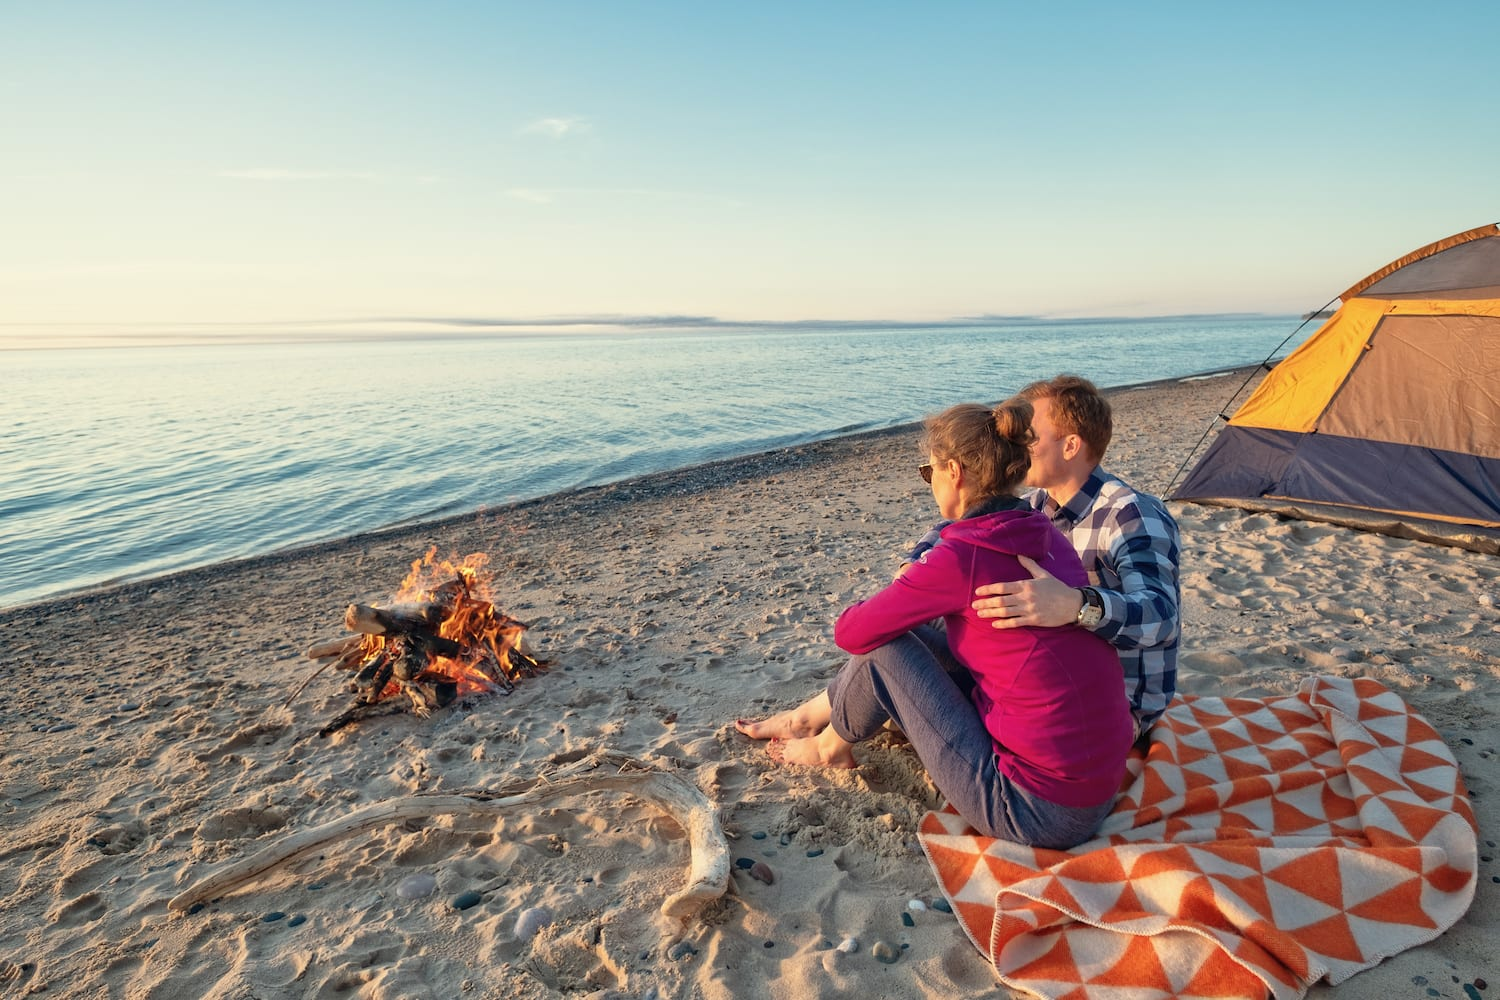 young couple on beach by fire camp enjoying sunset | Beltone Hearing Aid